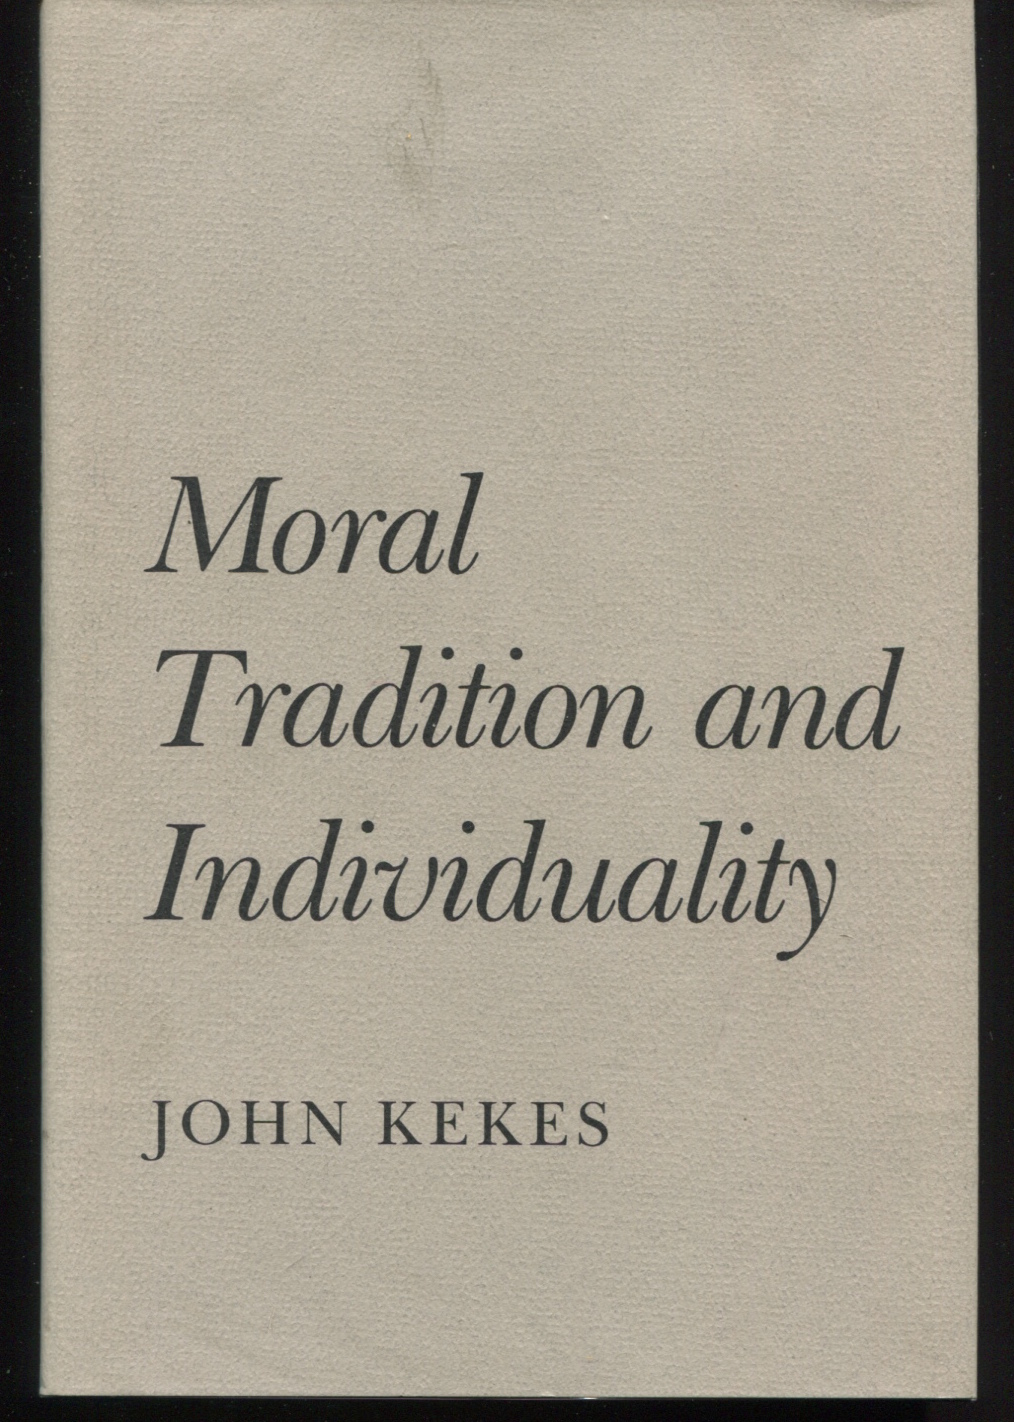 Moral Tradition and Individuality.